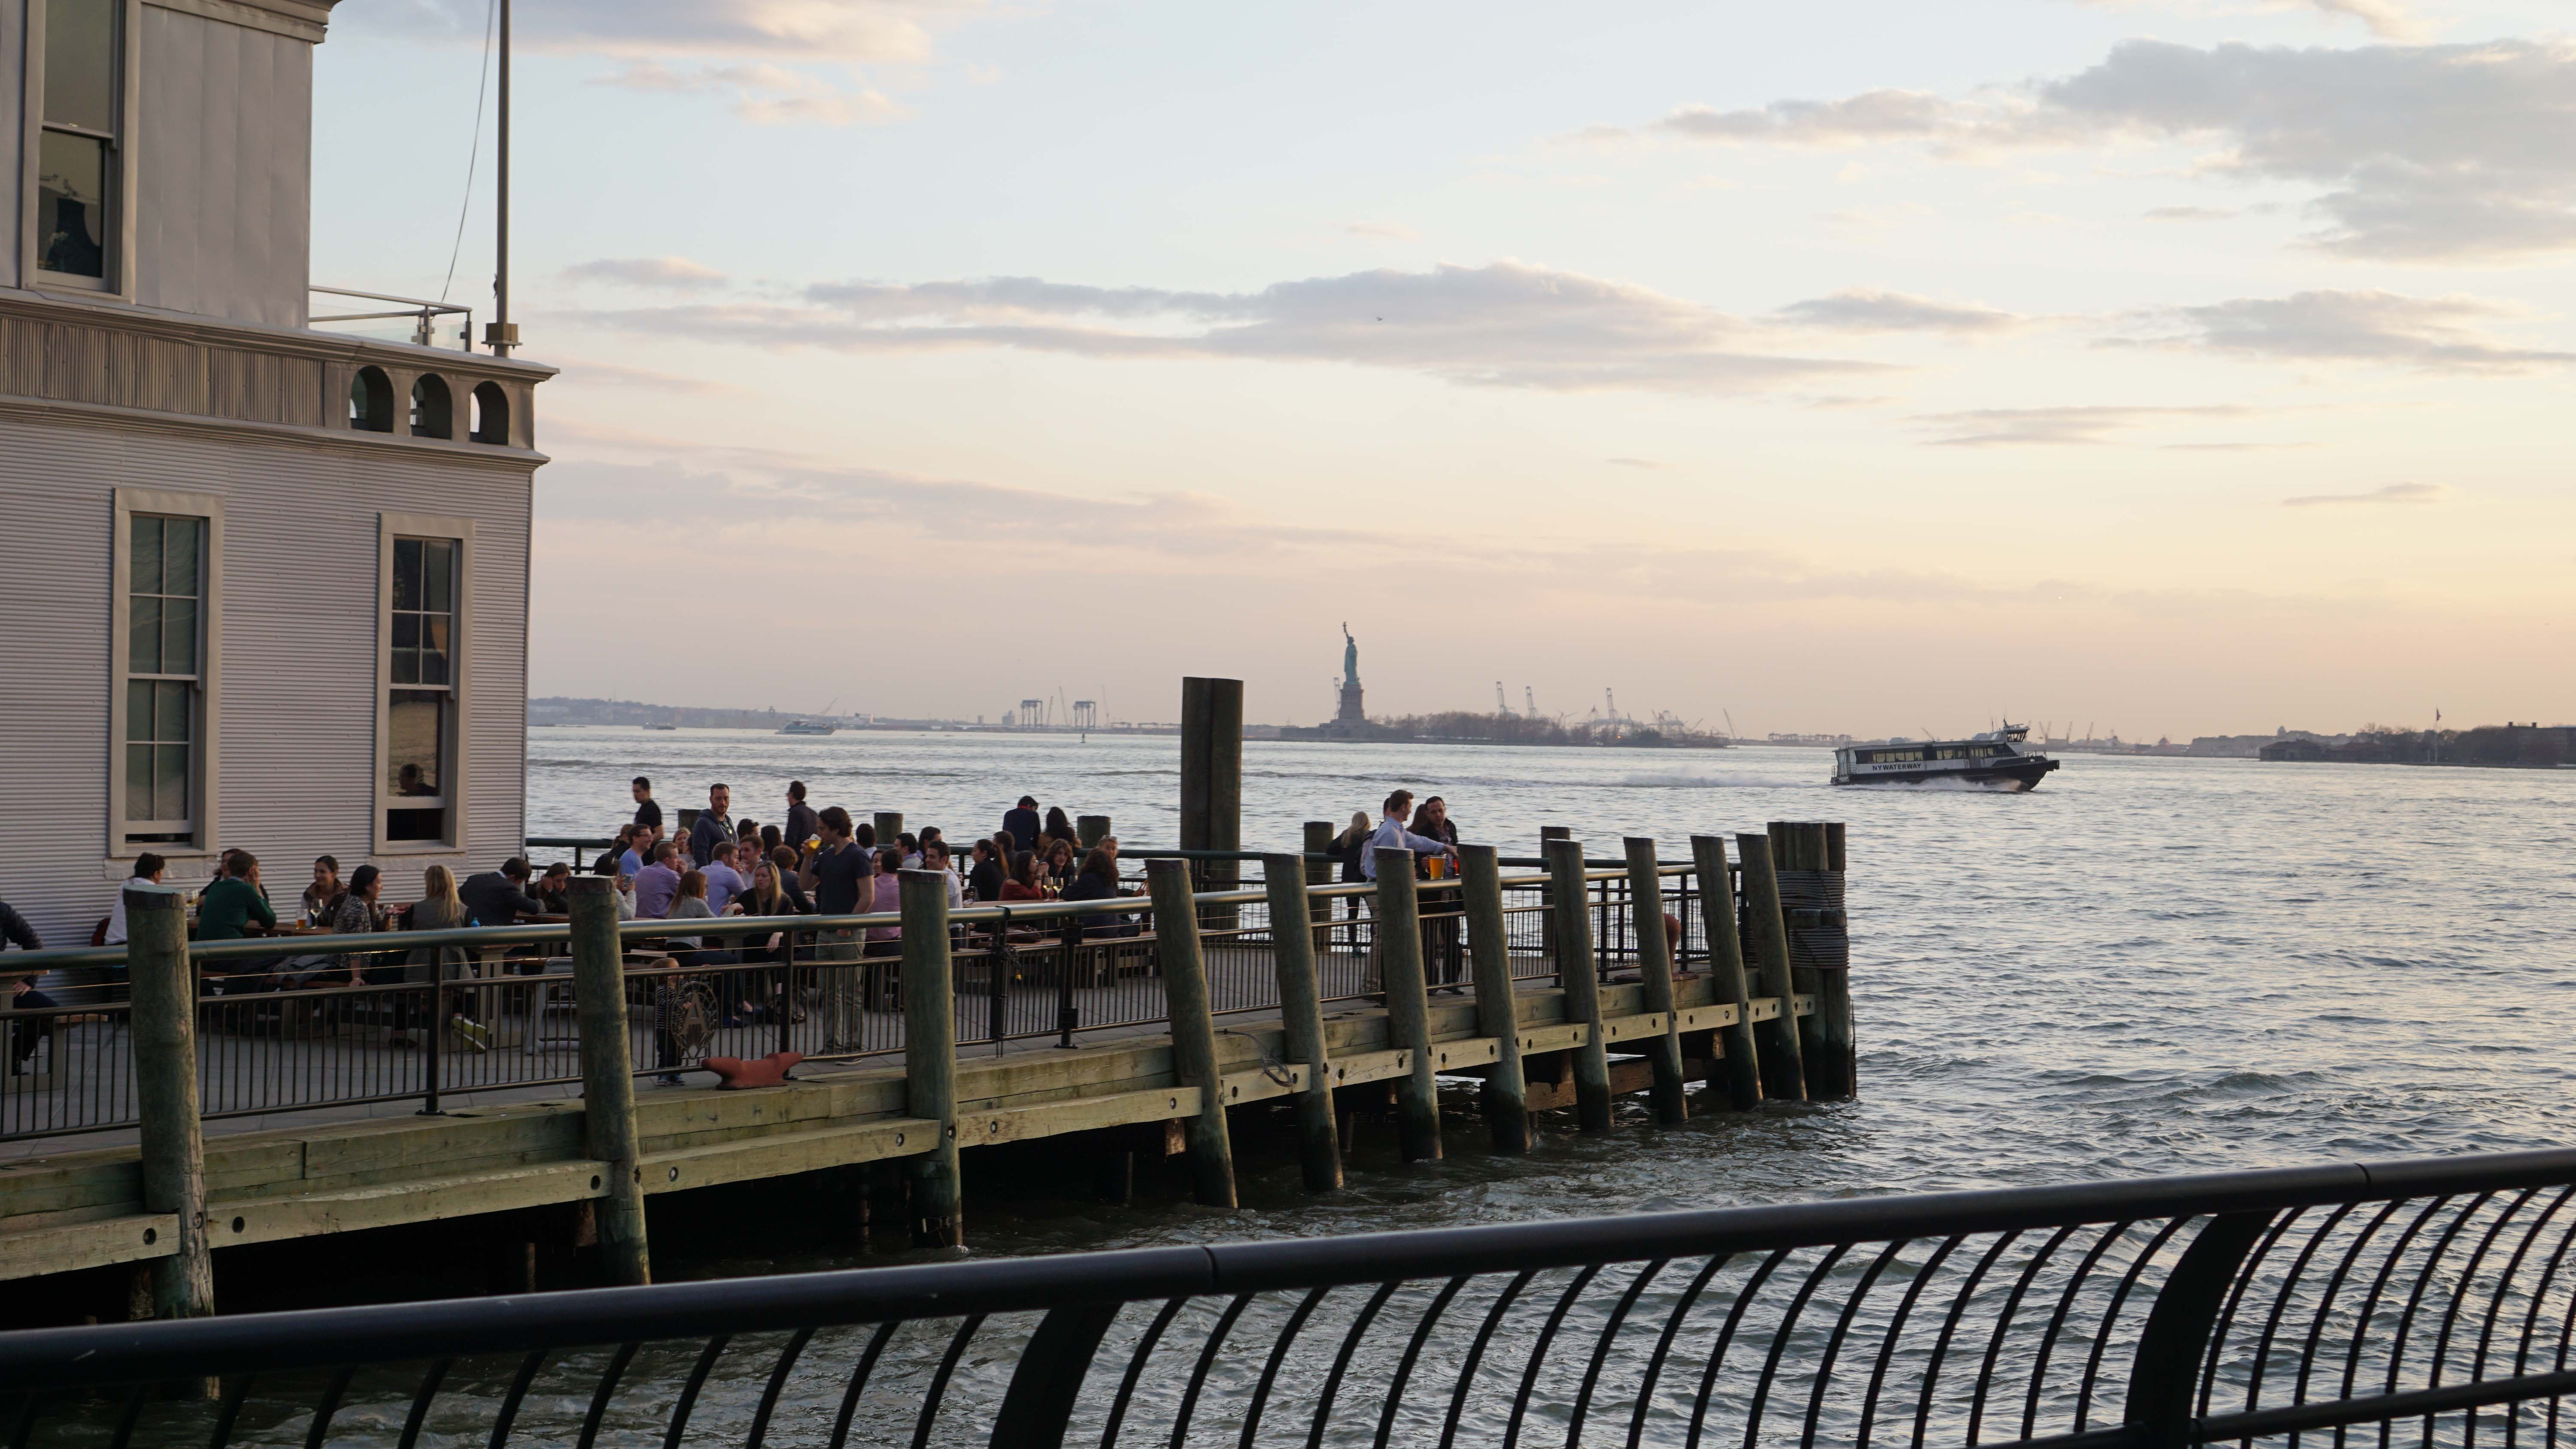 Pier A outdoor seating C 4-17-2015